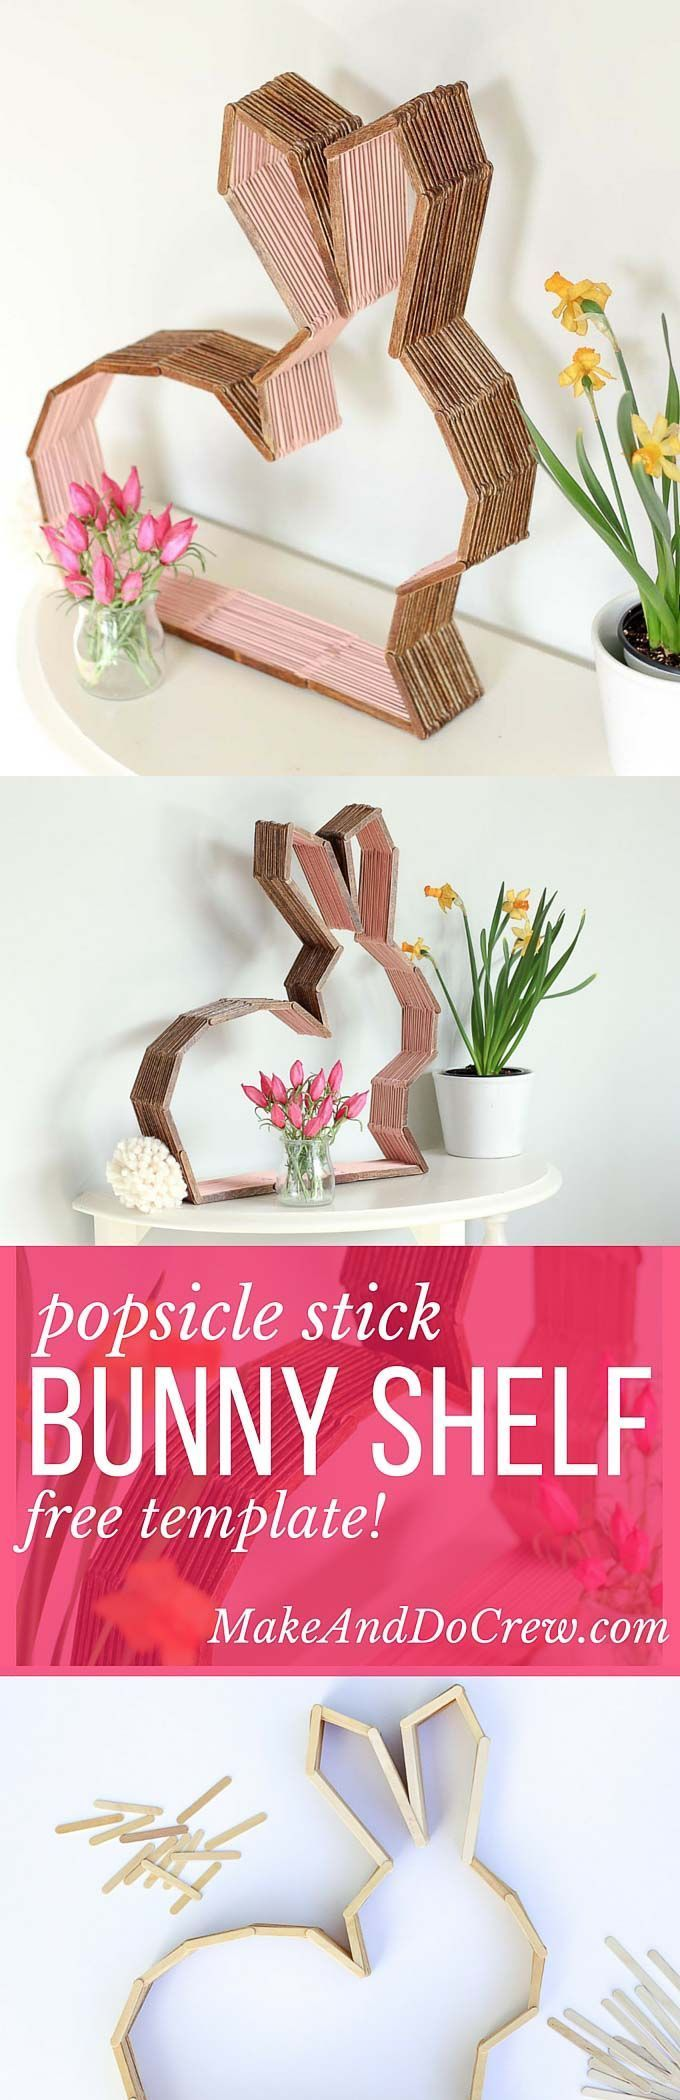 This bunny shelf makes a perfect Easter craft idea for Spring or DIY nursery decor to enjoy year round! Make it out of popsicle sticks using the free downloadable template. Click to see the full tutorial.   MakeAndDoCrew.com